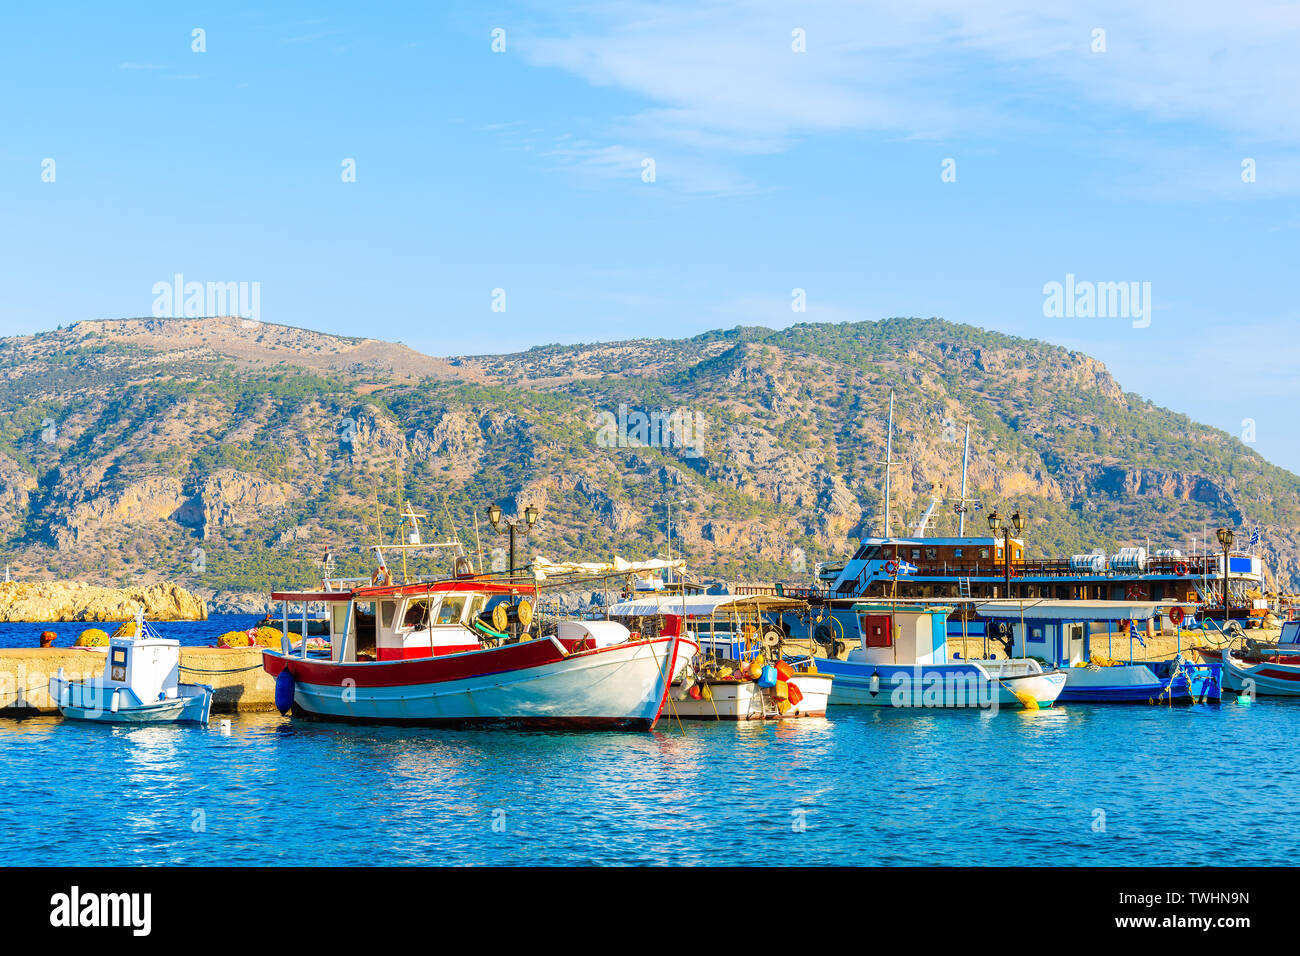 Boats in beautiful Pigadia fishing port with mountains in background, Karpathos island, Greece Stock Photo